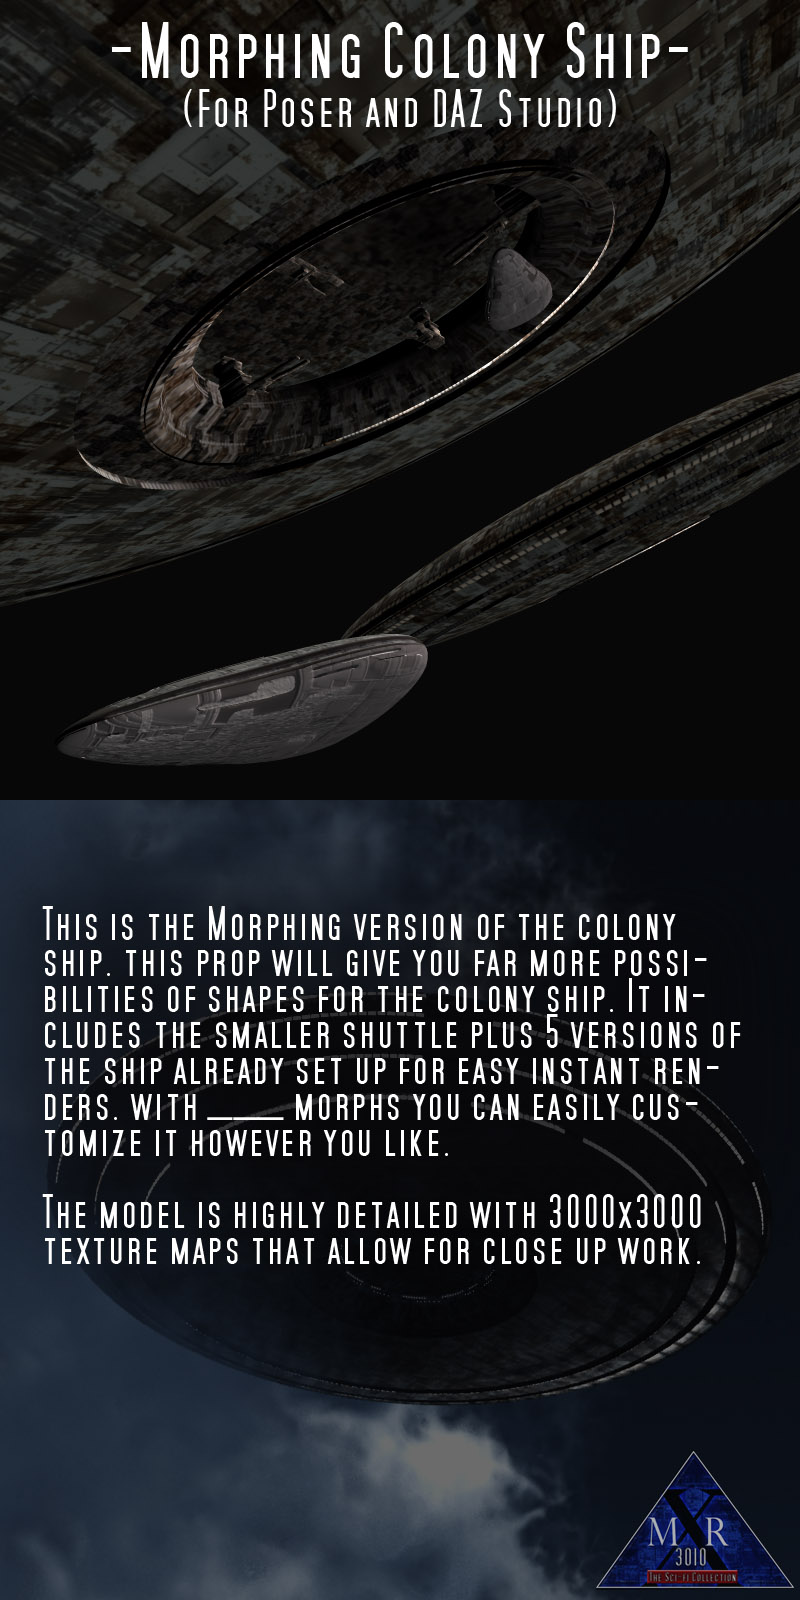 Morphing Colony Ship (Poser/Daz)